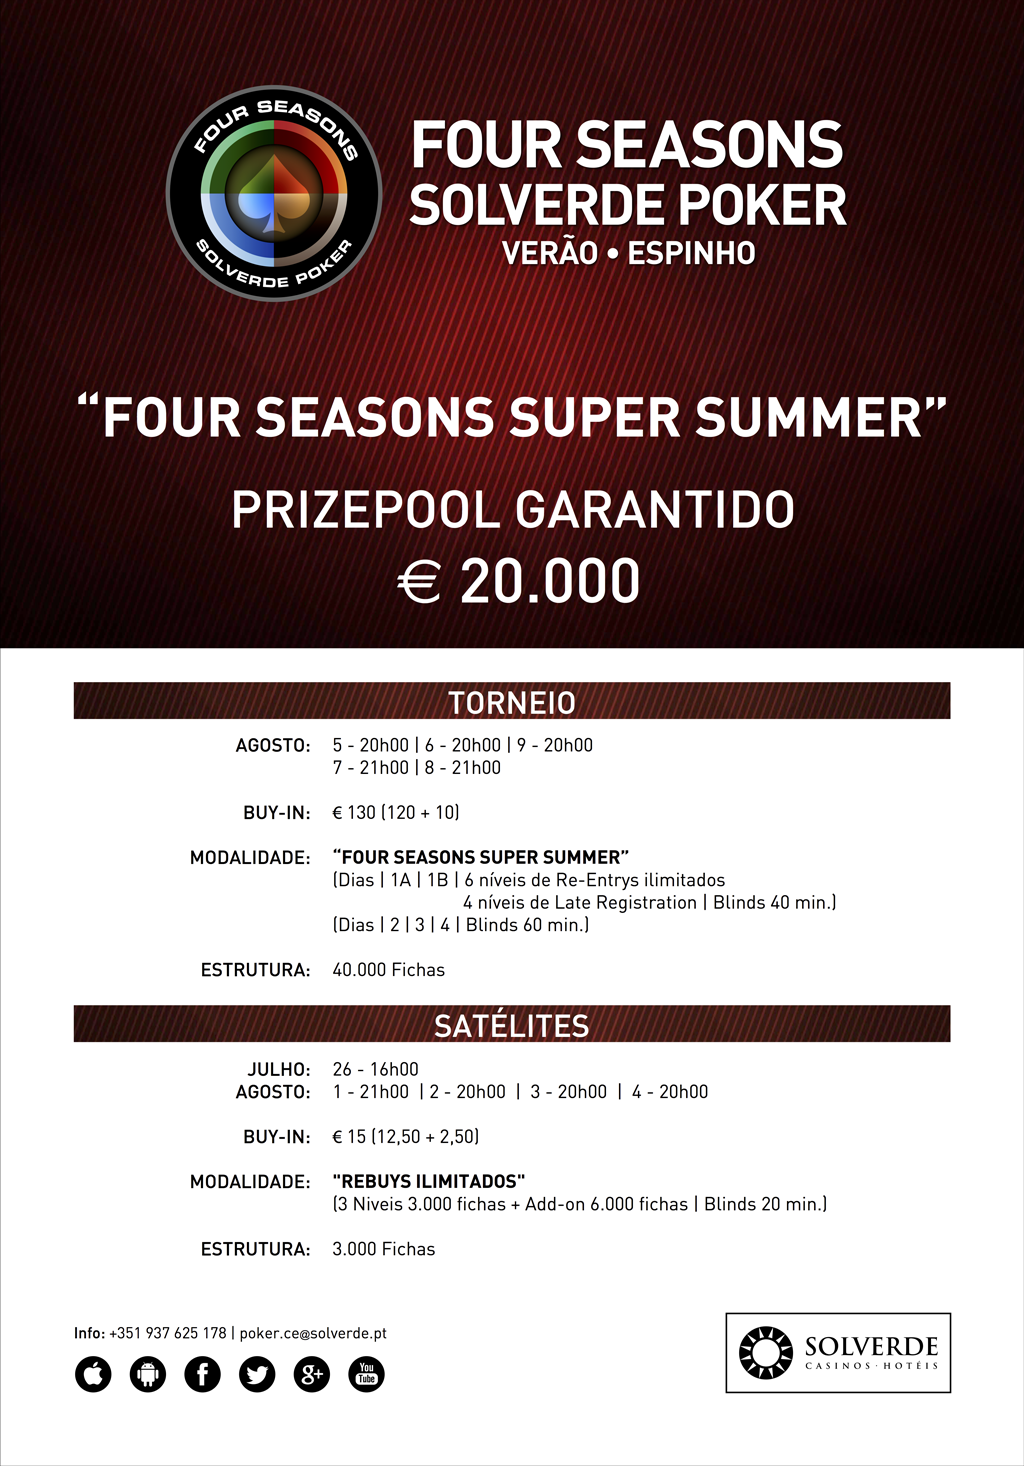 Hoje às 20:00 Dia 1B do Four Seasons Super Summer €20,000 Garantidos no Casino de Espinho 101